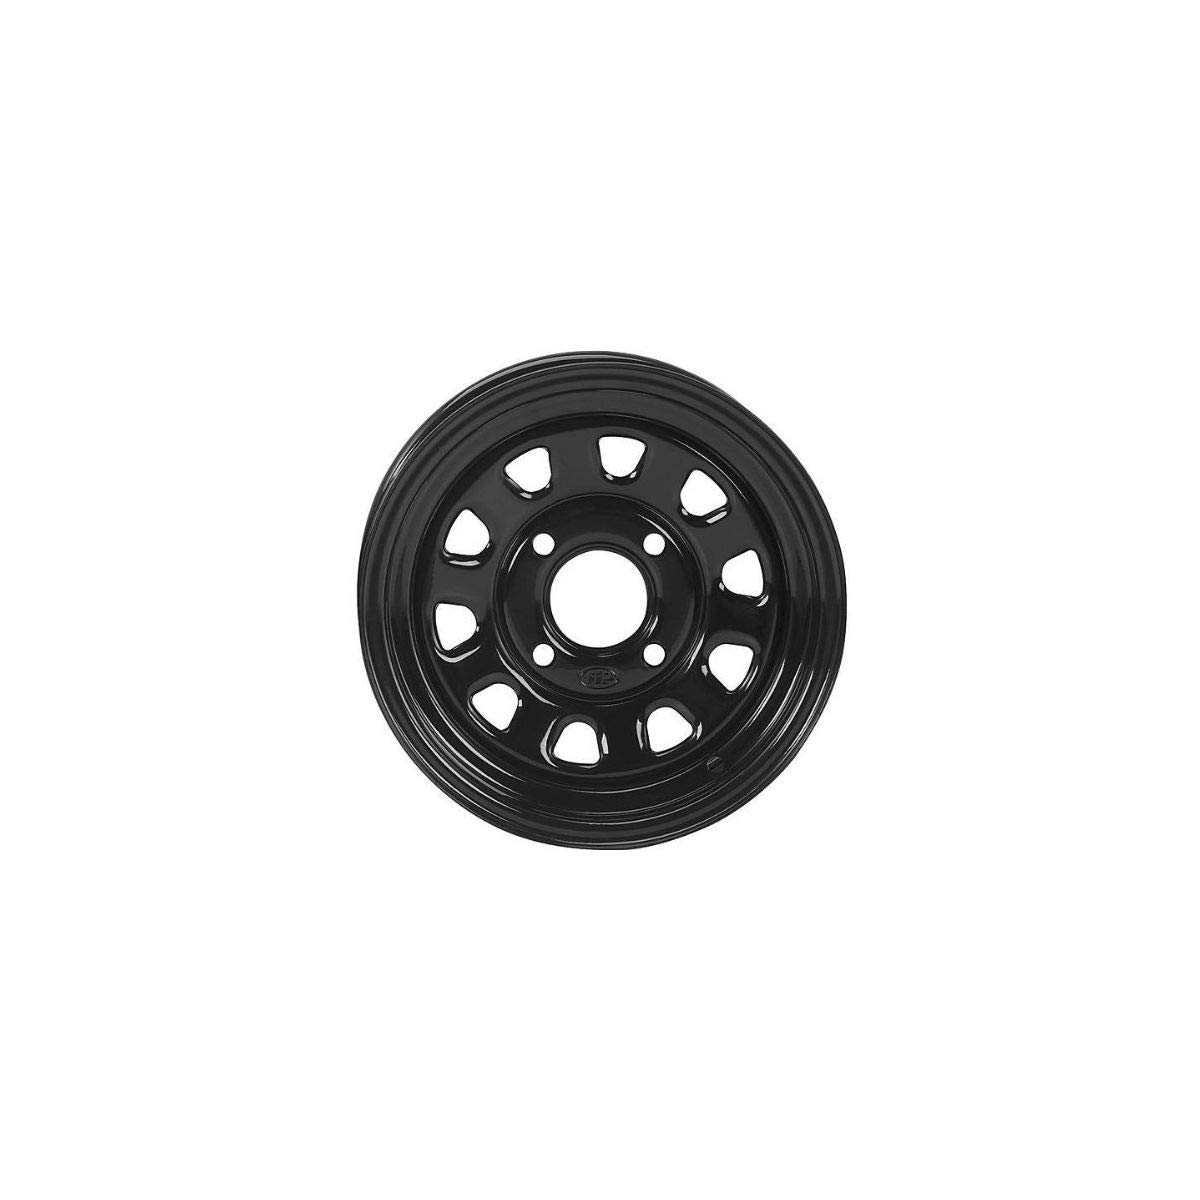 ITP Delta Steel Black Wheel with Machined Finish (12x7'/4x137mm) 1225573014